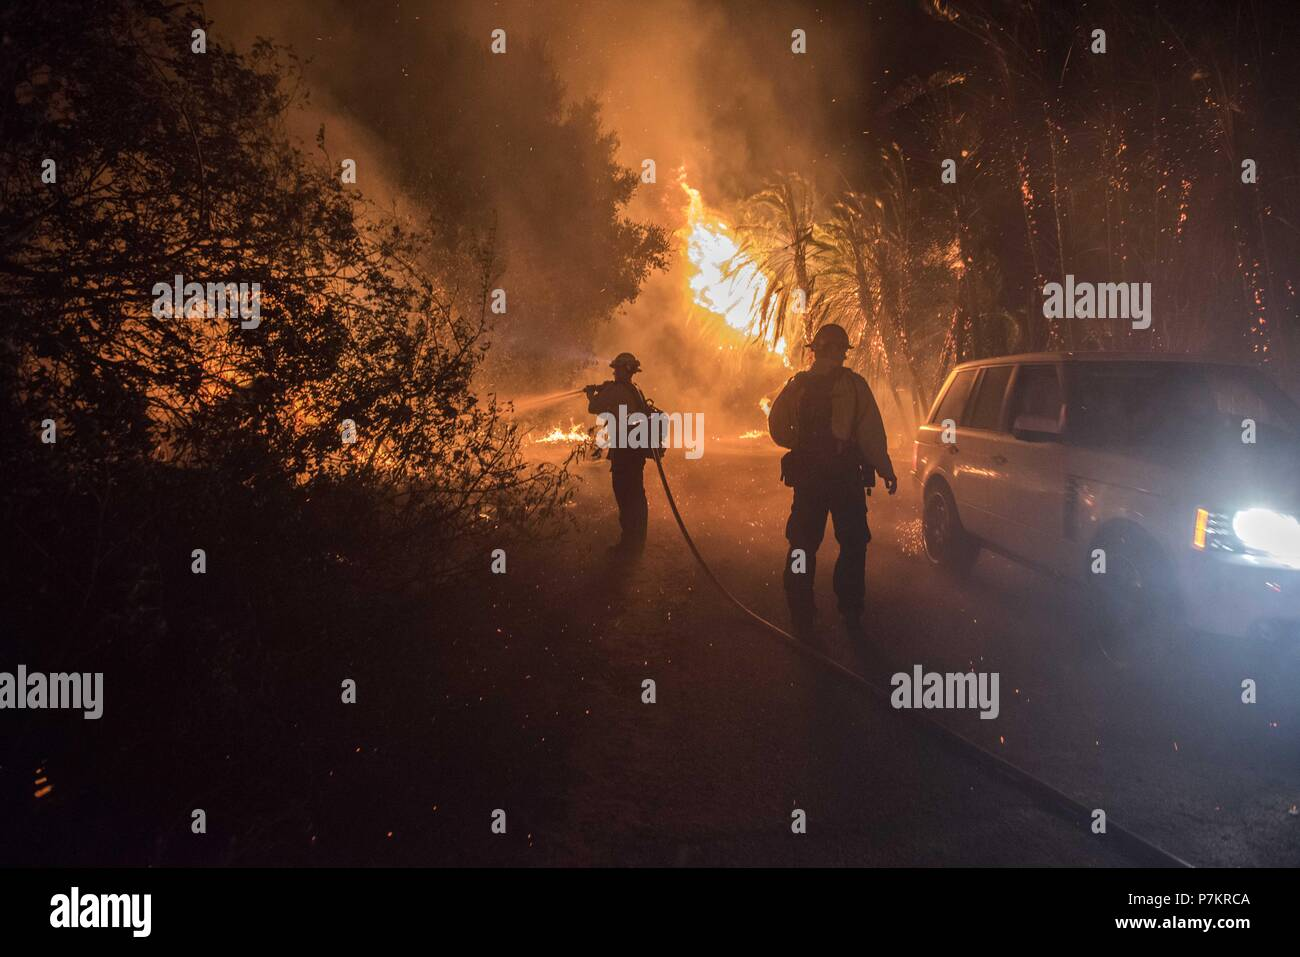 Goleta, California, USA. 6th July, 2018. Firefighters fight the Holiday Fire as residents evacuate the area north of Fairview Avenue Friday evening. Amid a record-setting heat wave in Southern California, the Holiday Fire burned up to 20 structures and 2,000 people were evacuated. Credit: Erick Madrid/ZUMA Wire/Alamy Live News - Stock Image